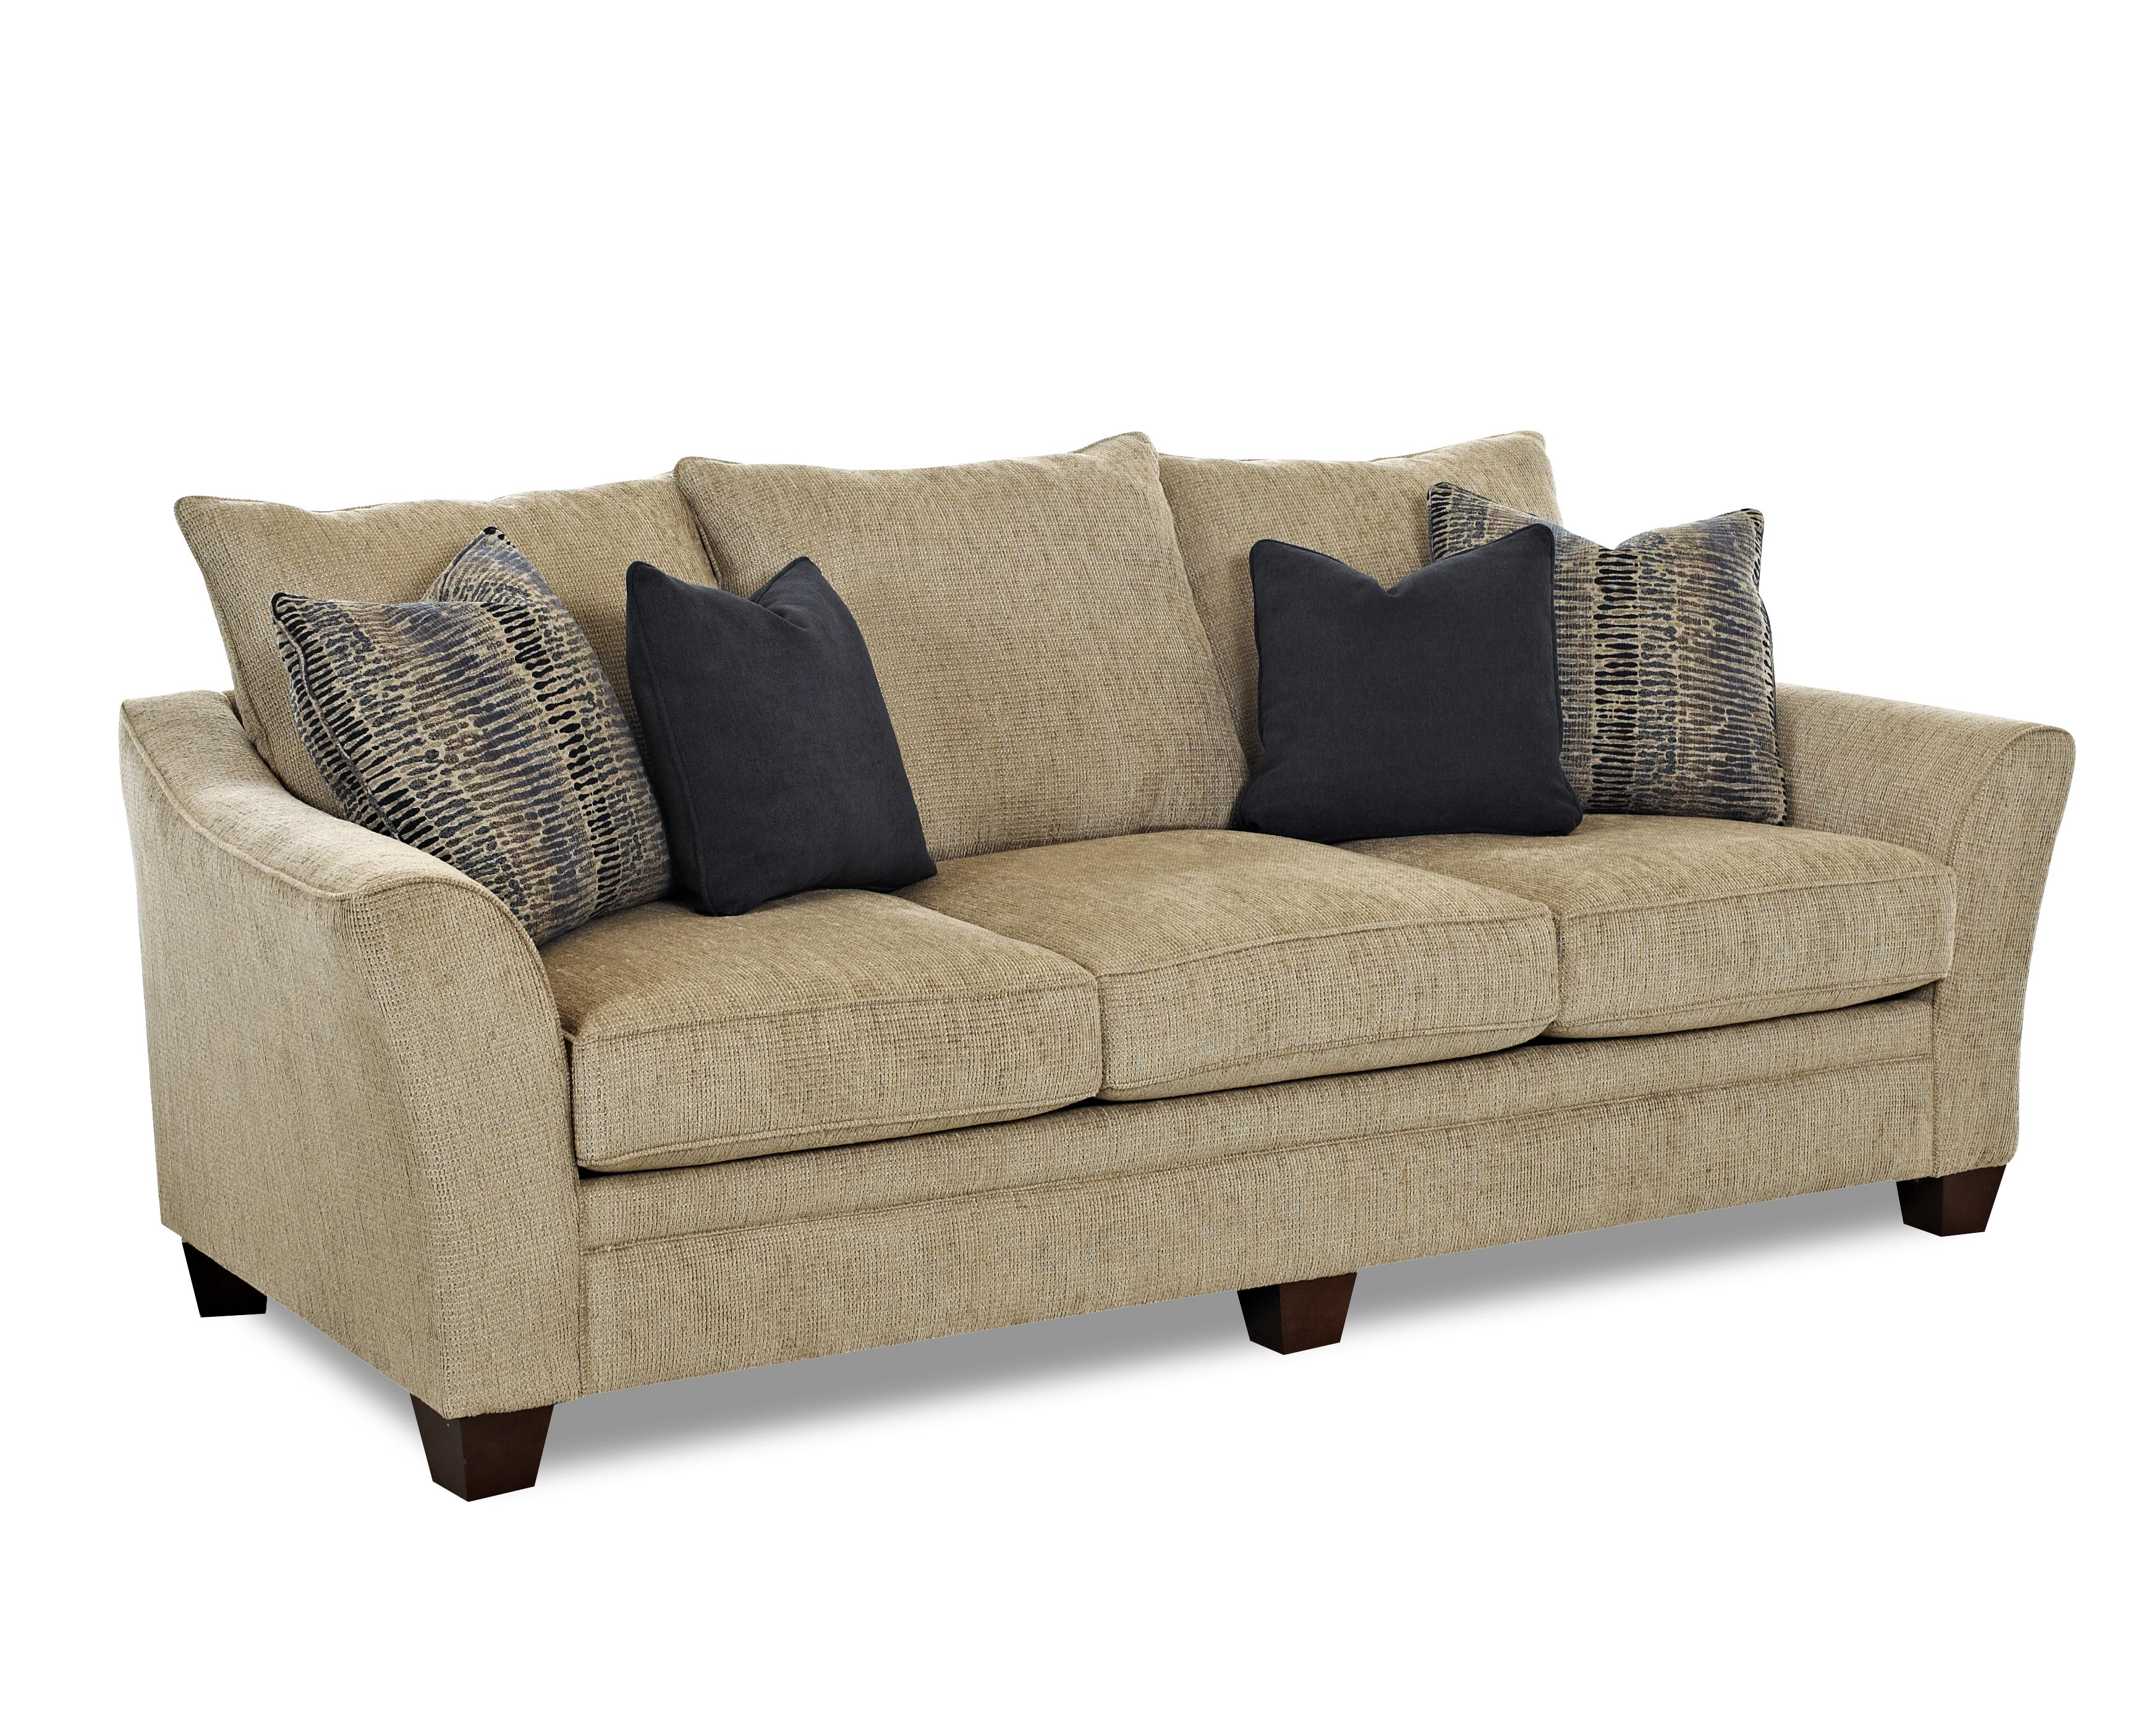 Klaussner Posen Stationary Contemporary Sofa Item Number 83844 S Wootensandstone